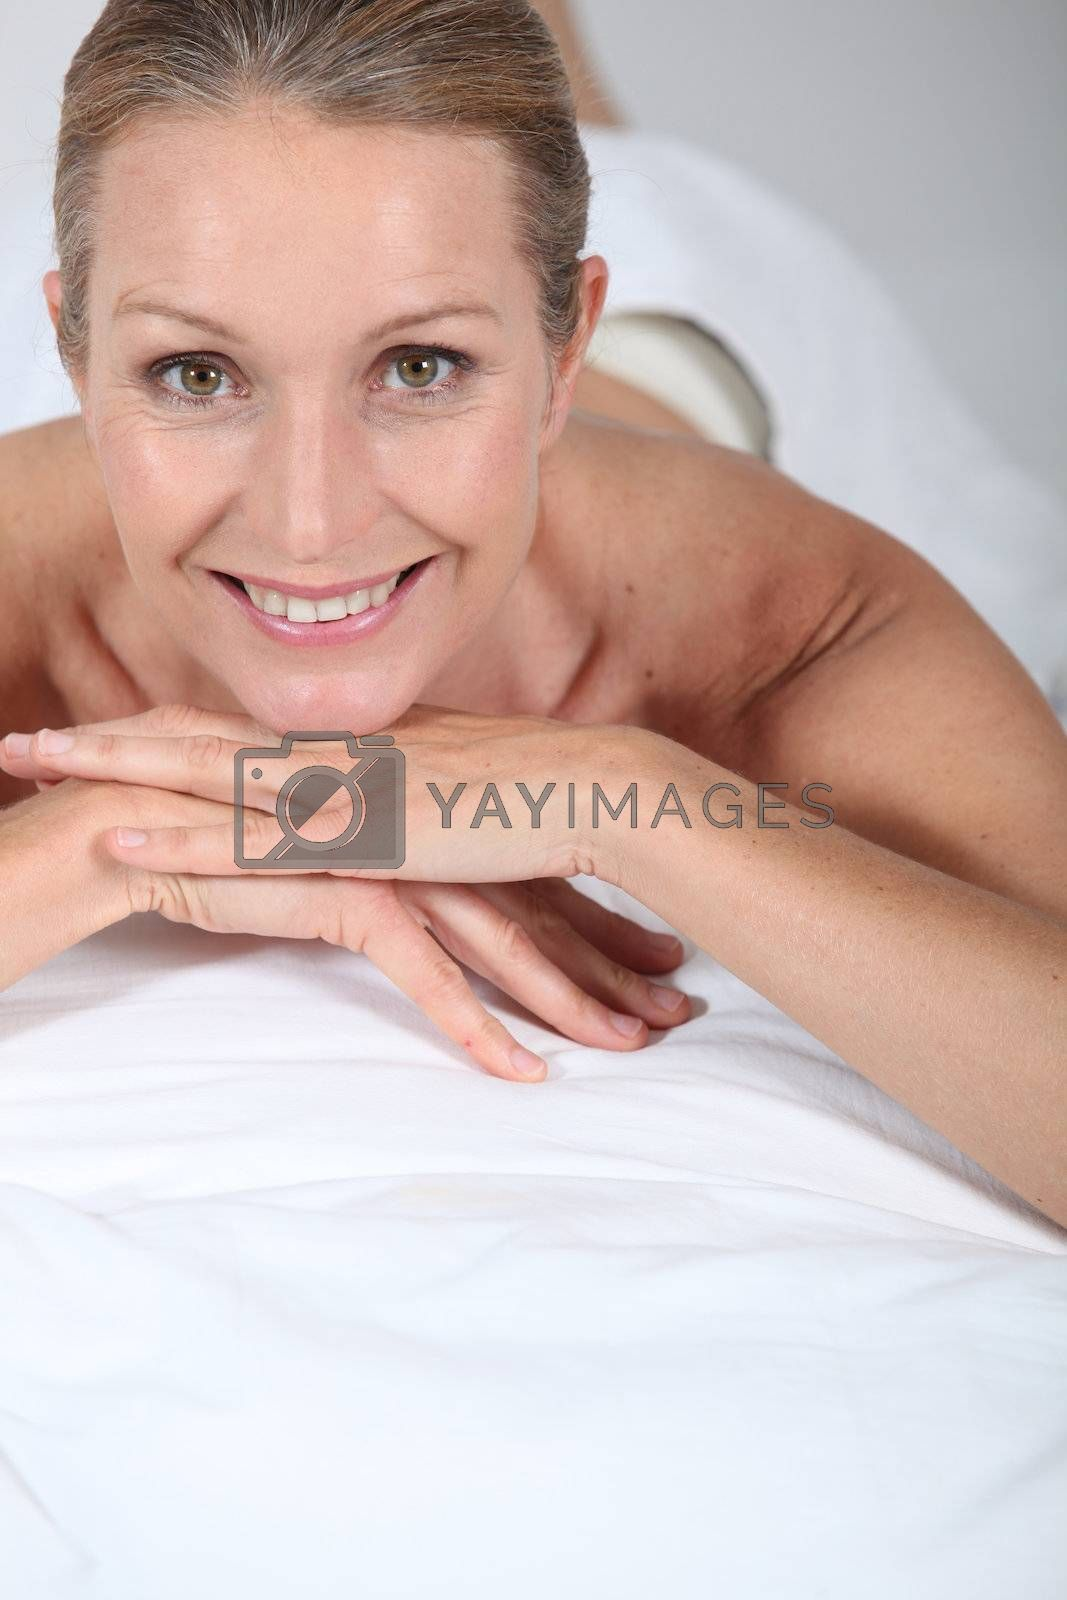 Blond woman laid on front awaiting massage by phovoir